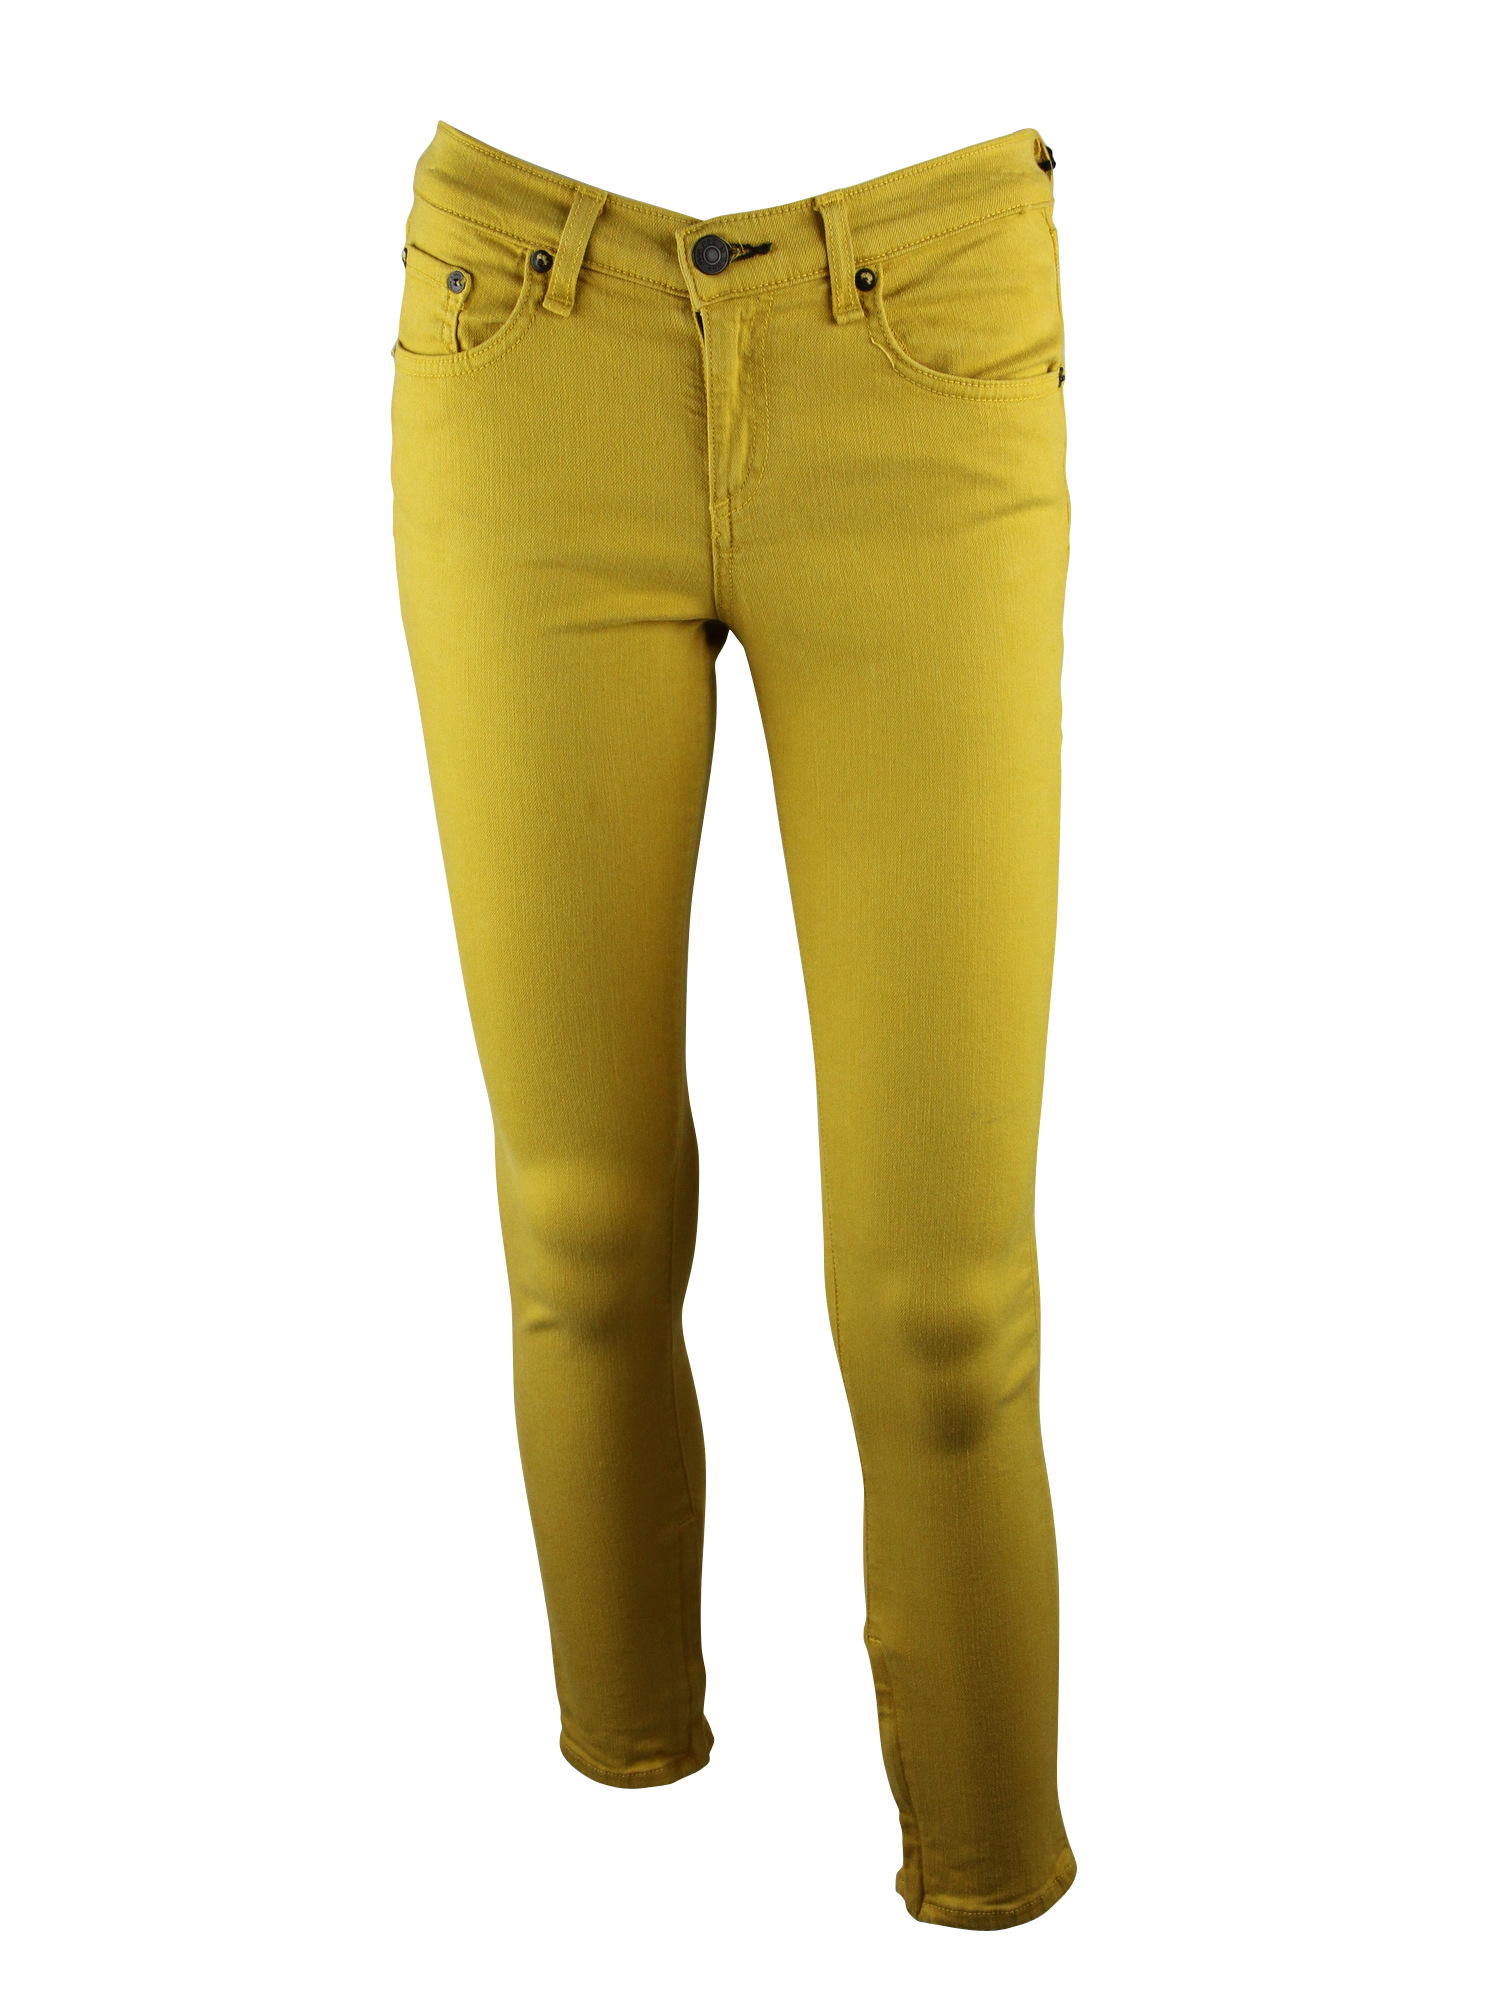 Popular Rag U0026 Bone/JEAN Womens Mustard Zipper Capri Skinny Jeans 26 $187 New | EBay